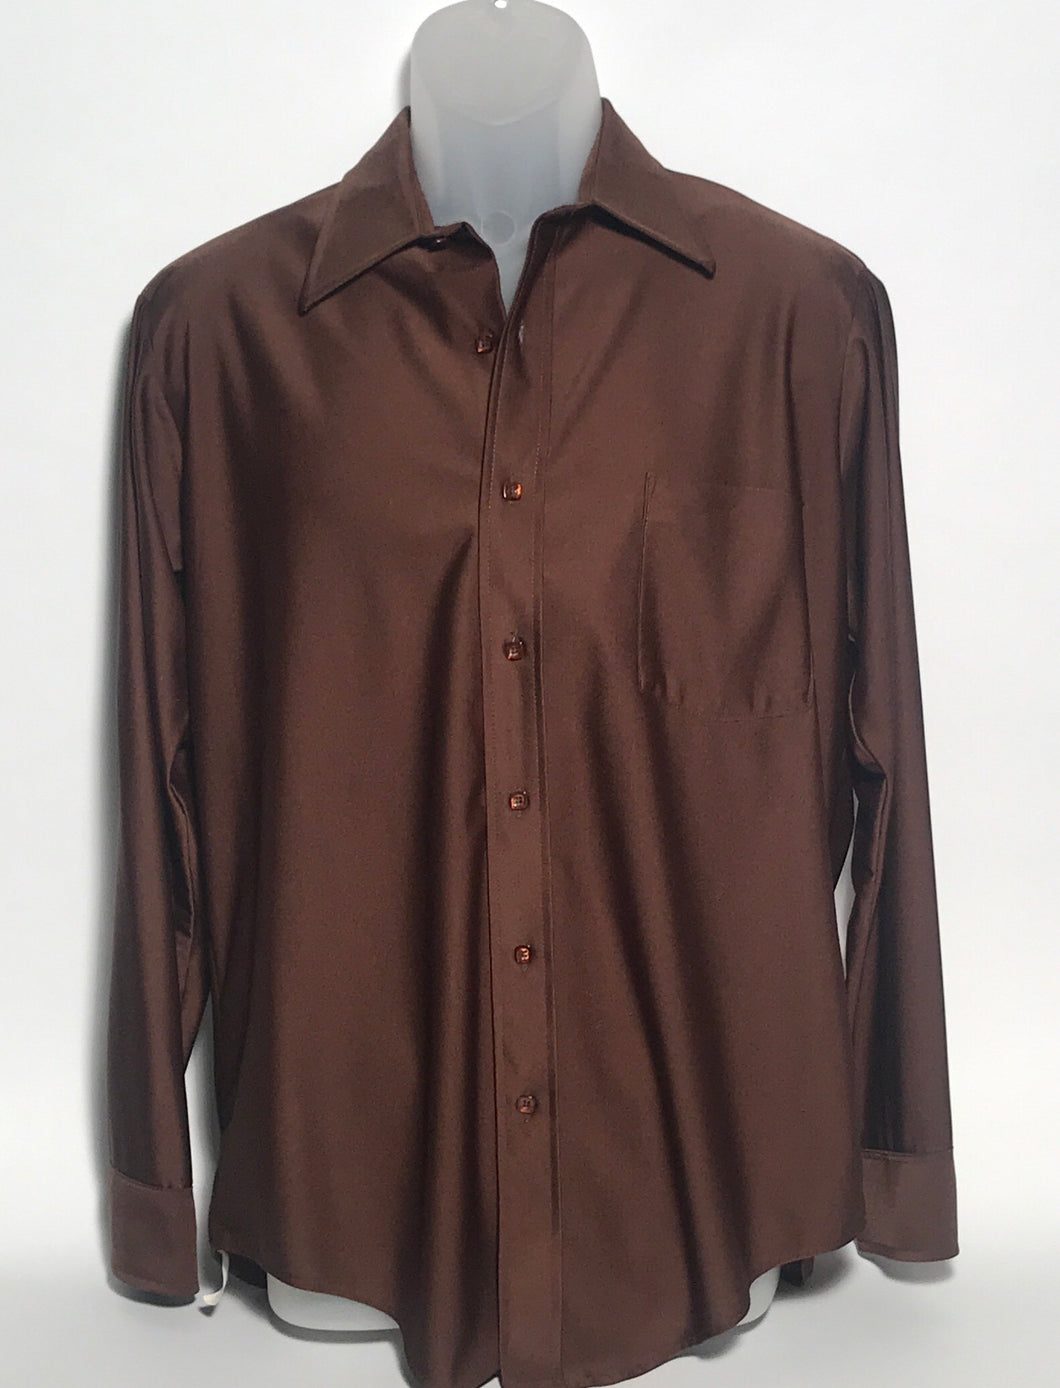 Van Heusen Qiana Vintage Brown Men's Disco Shirt Size Medium